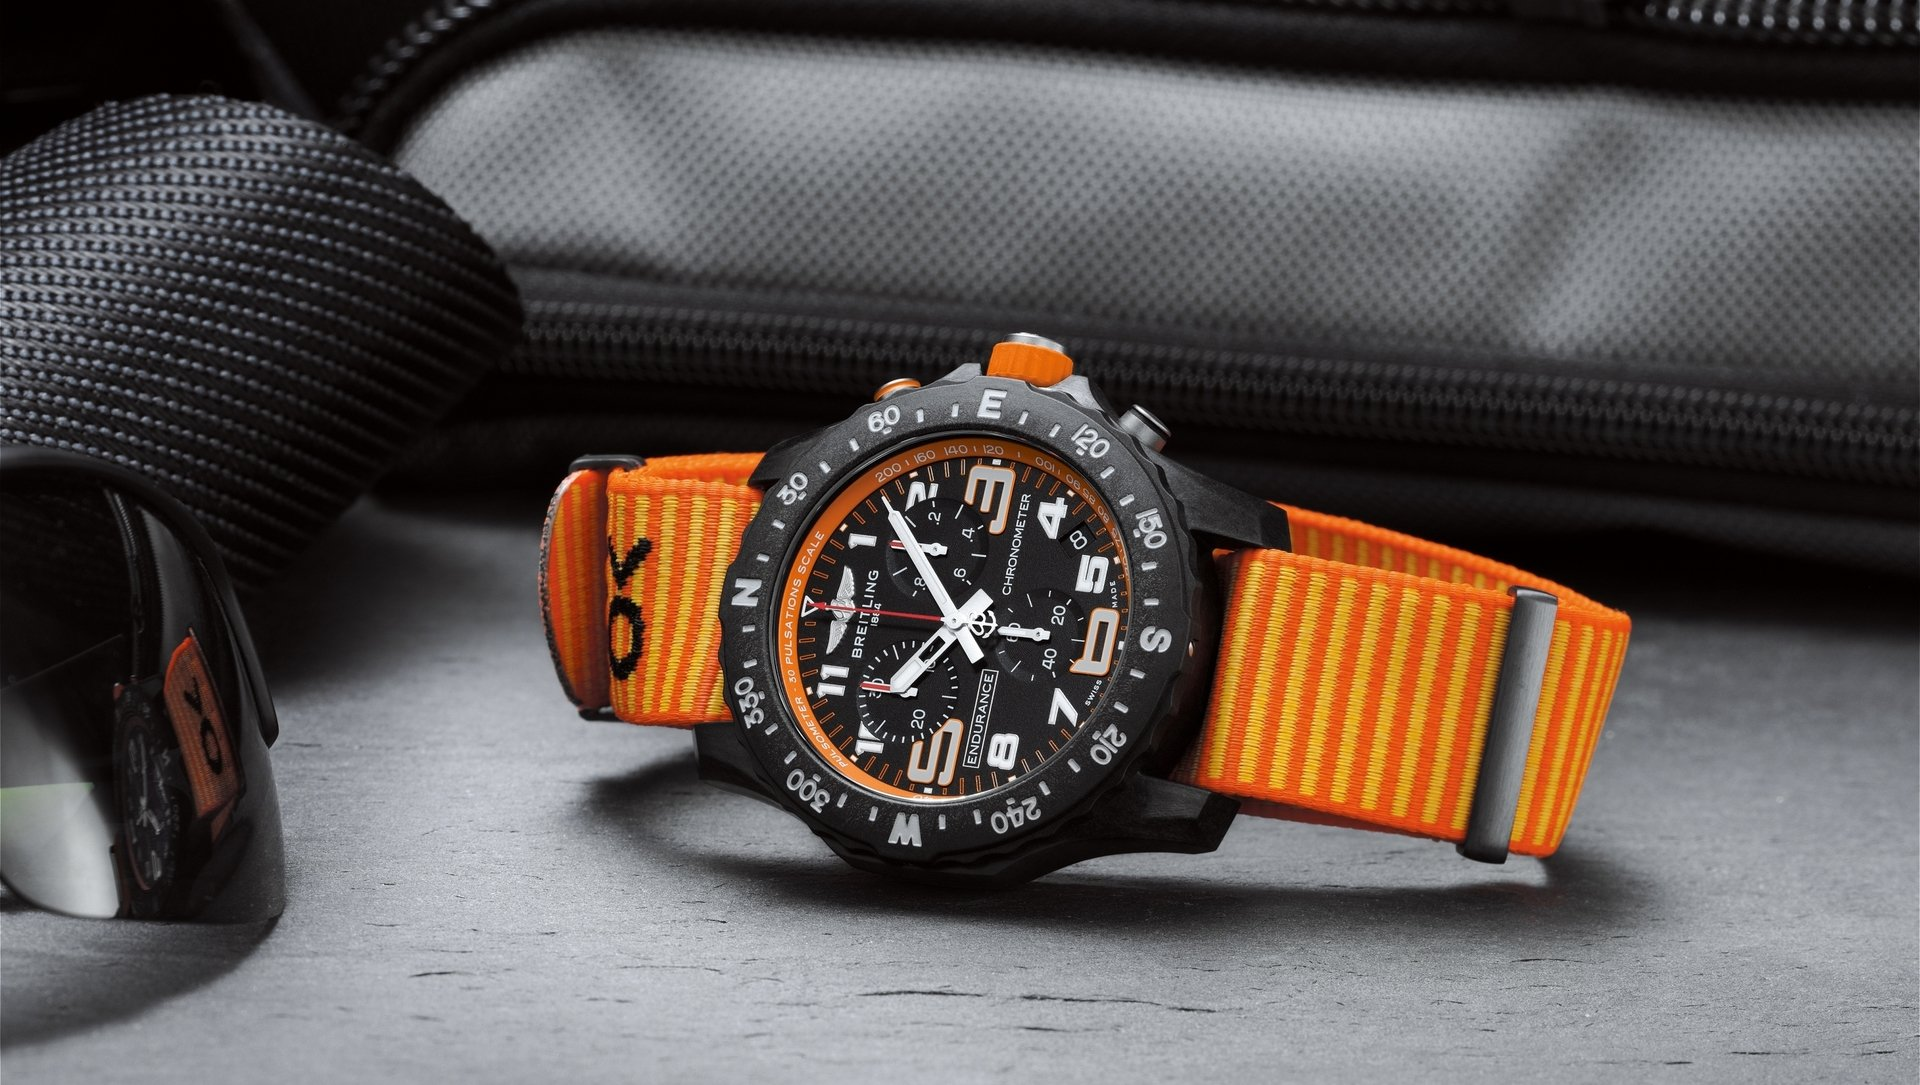 08_endurance-pro-with-an-orange-inner-bezel-and-outerknown-econyl-yarn-nato-strap.jpg